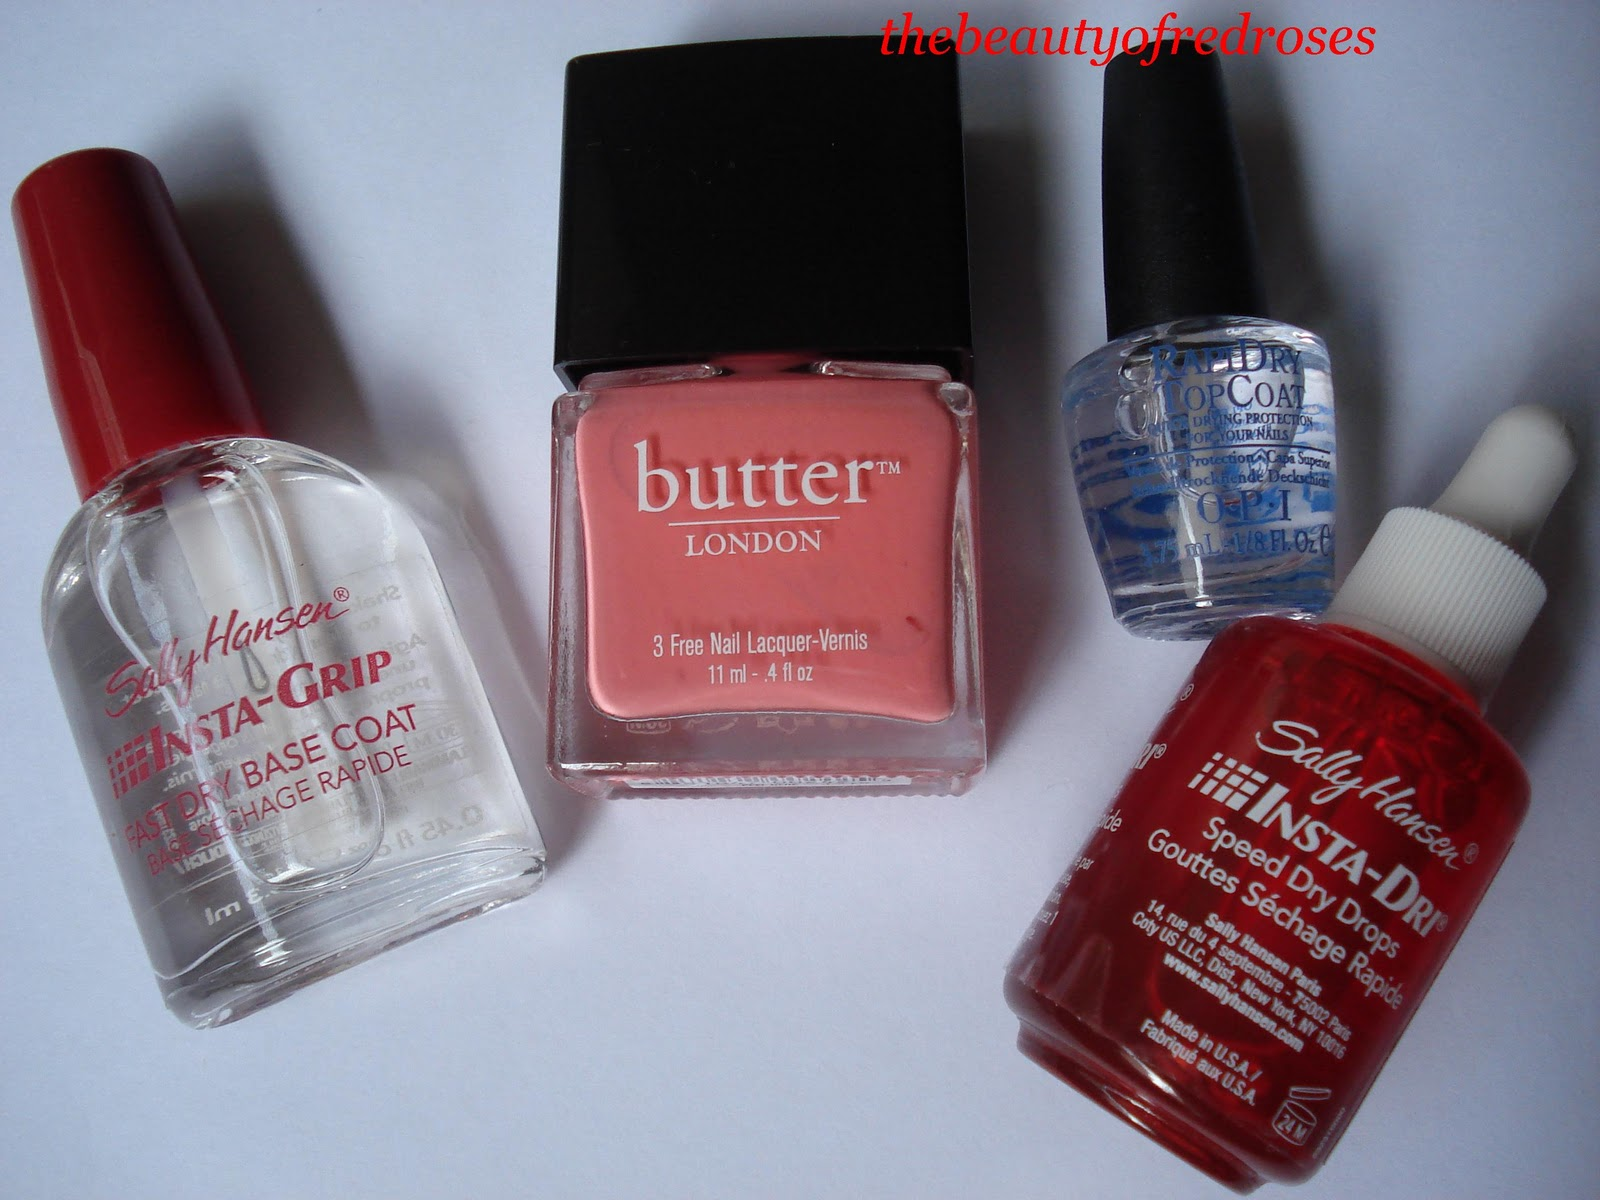 The Beauty of Red Roses: Madison Magazine + Butter London Nail Polish